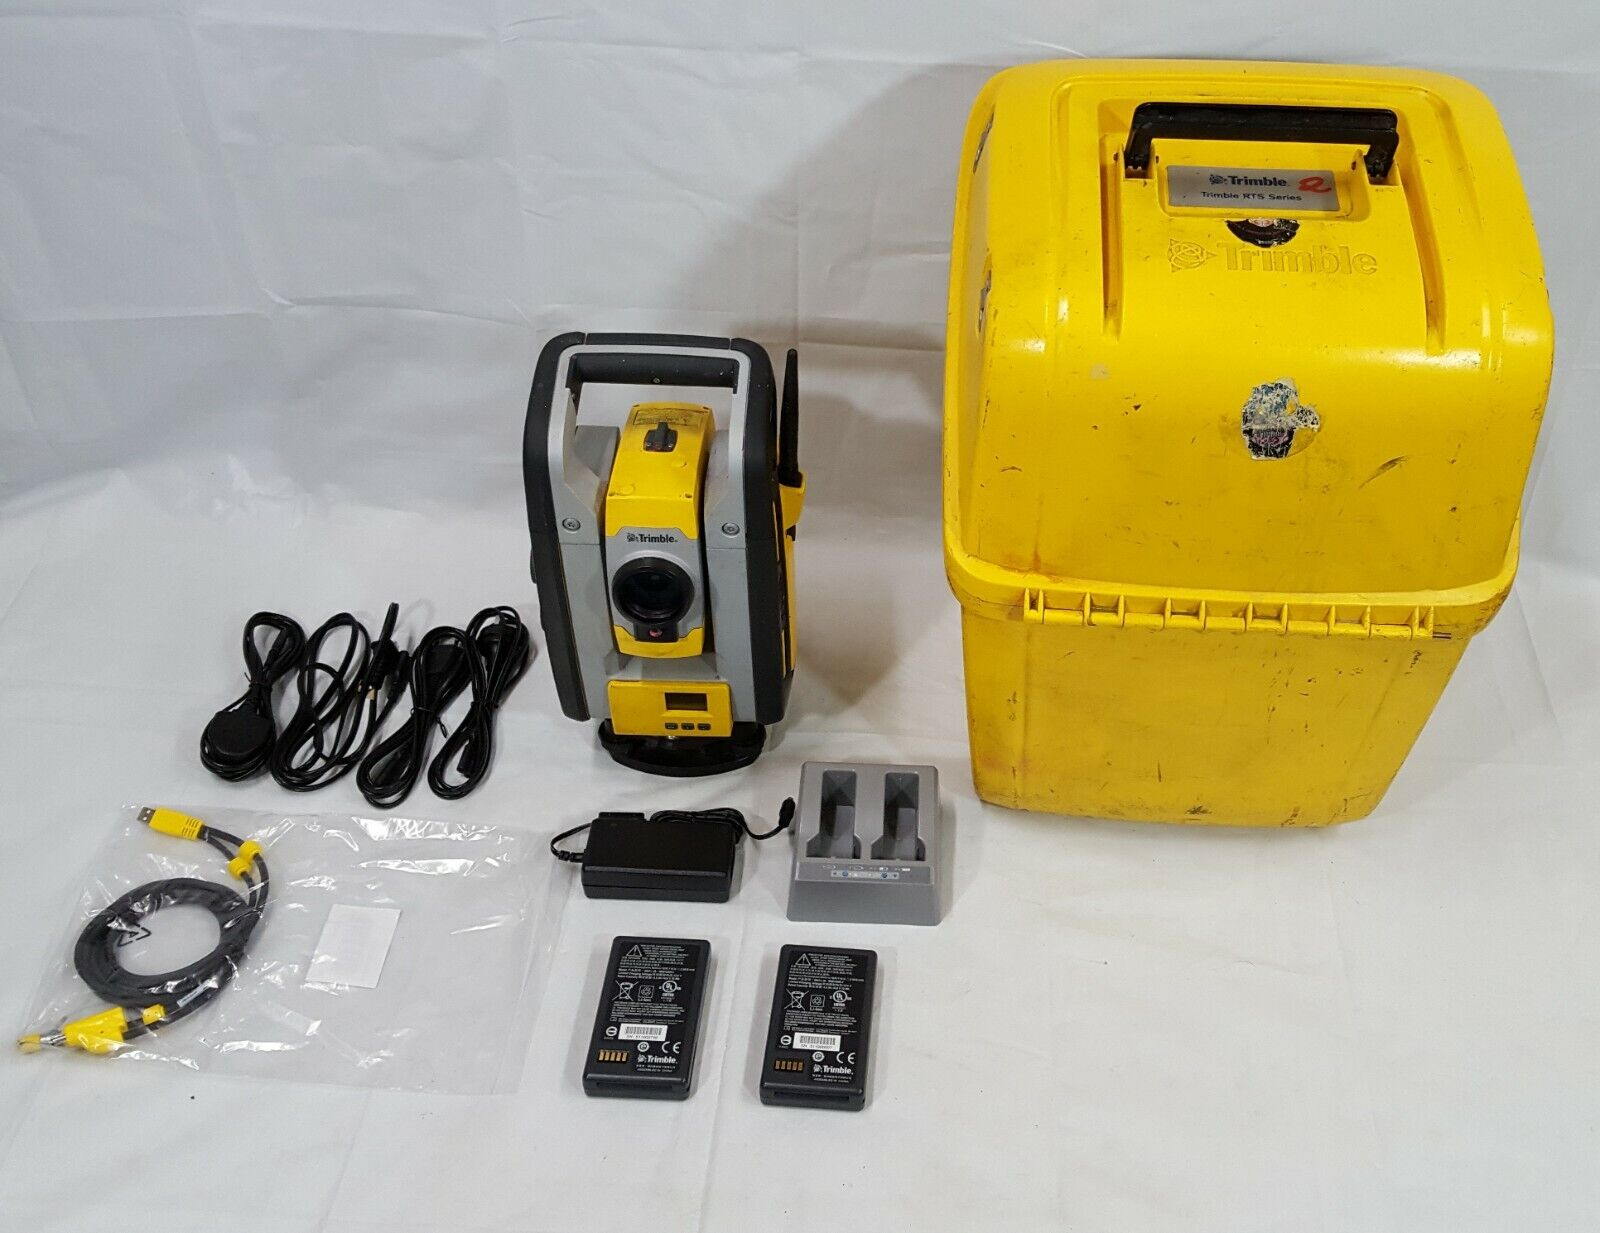 Trimble RTS773 Vision DR HP Robotic Total Station w/ Batteries & Charger in Case